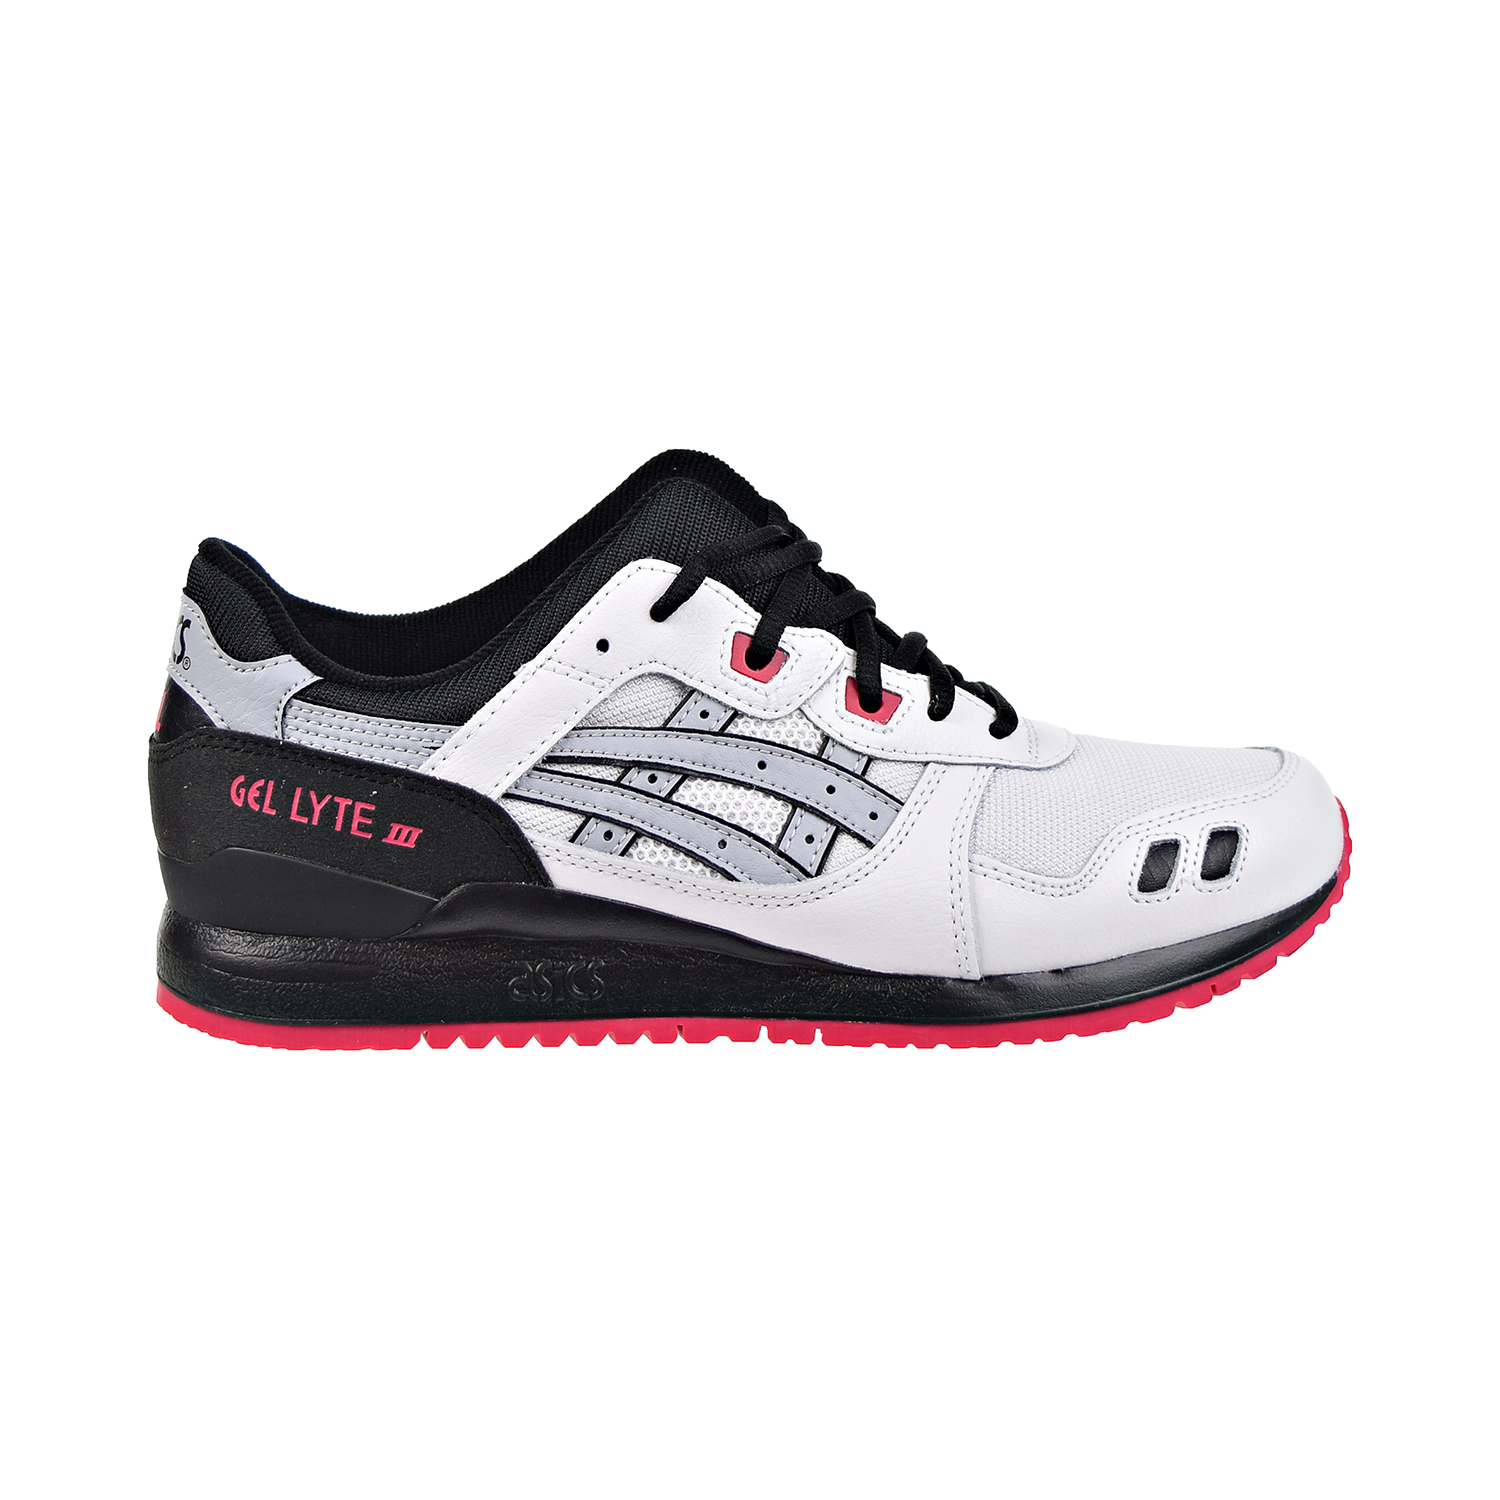 Shoes 100 Mens Iii Details 1191a245 Asics Lyte Grey Whitepiedmont Tiger Gel About yOm0vnP8wN